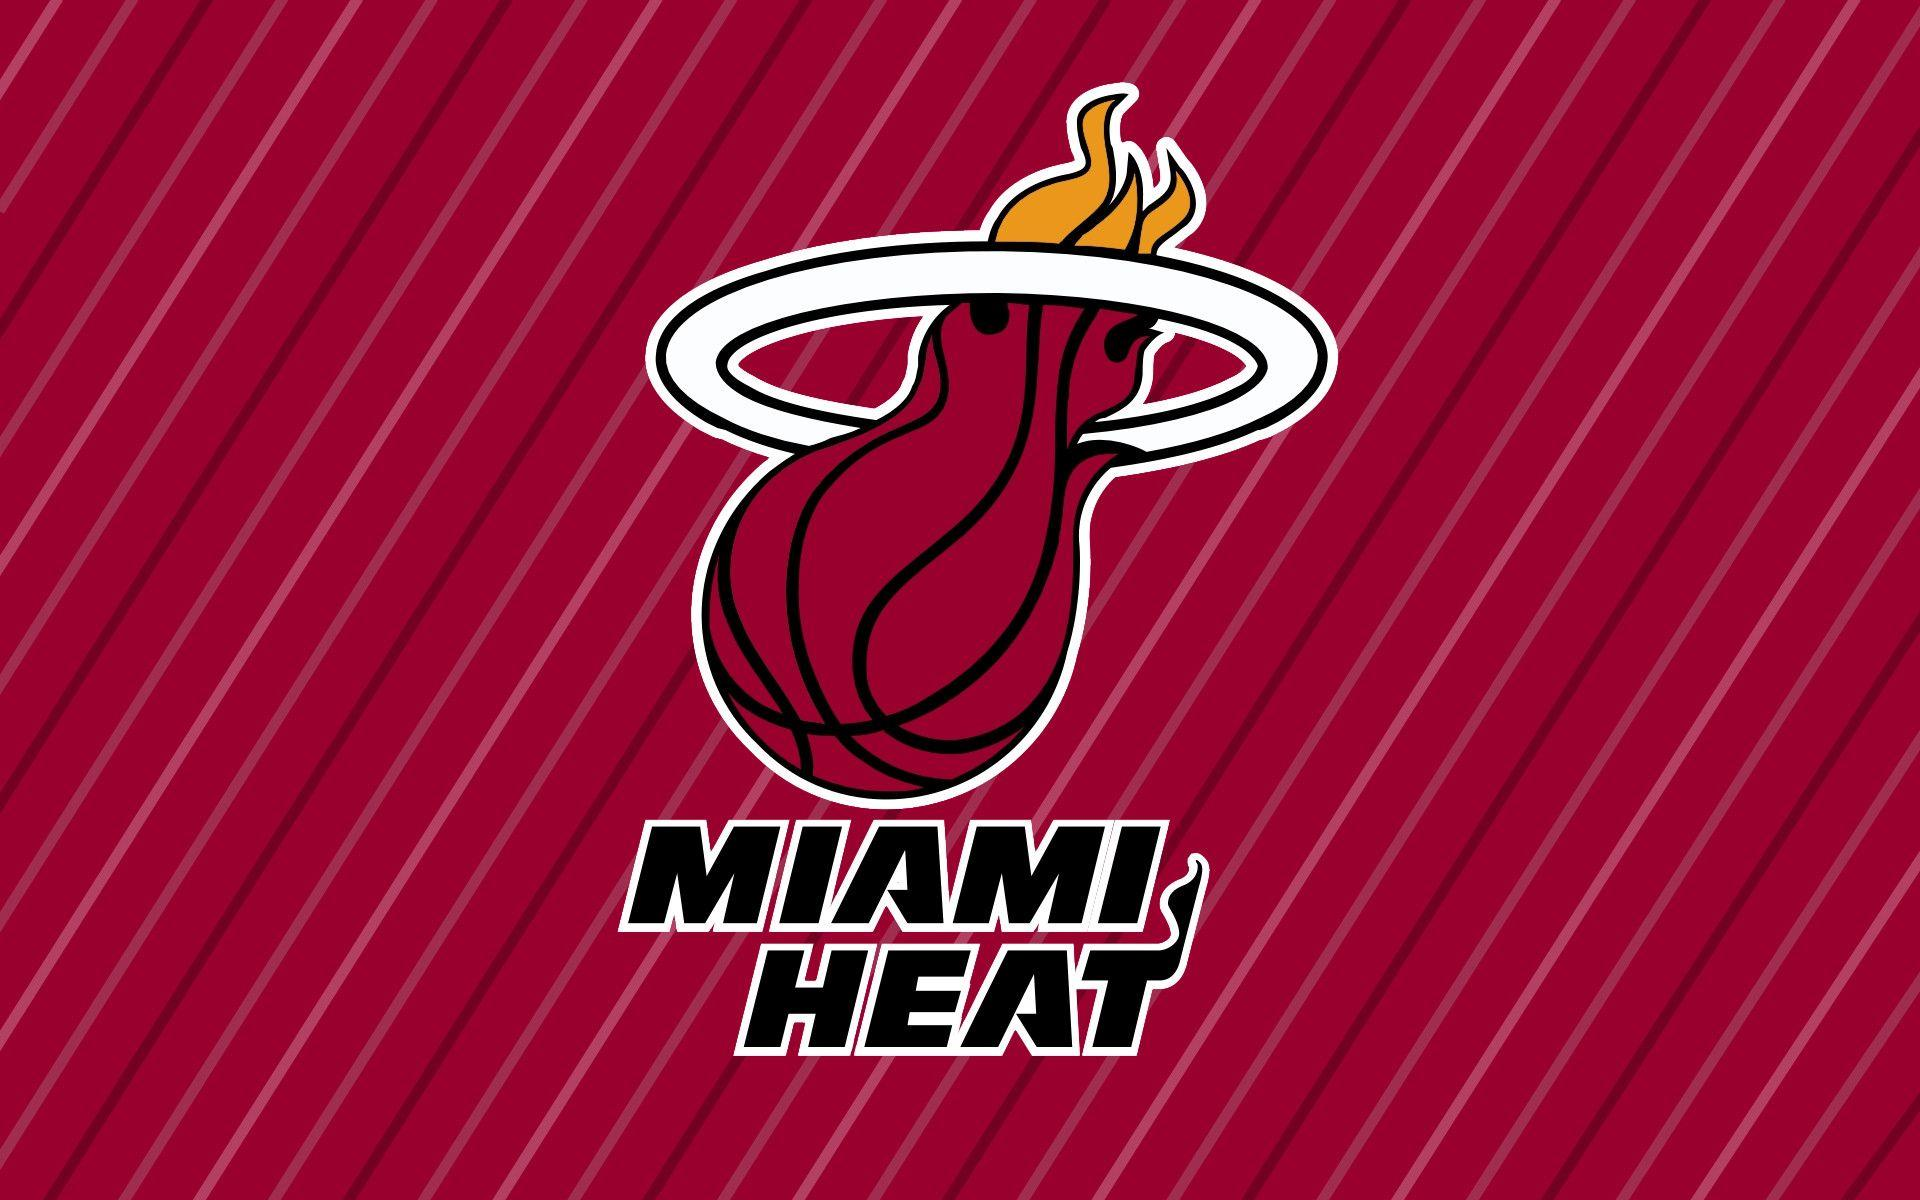 Wallpapers Miami Heat - Wallpaper Cave